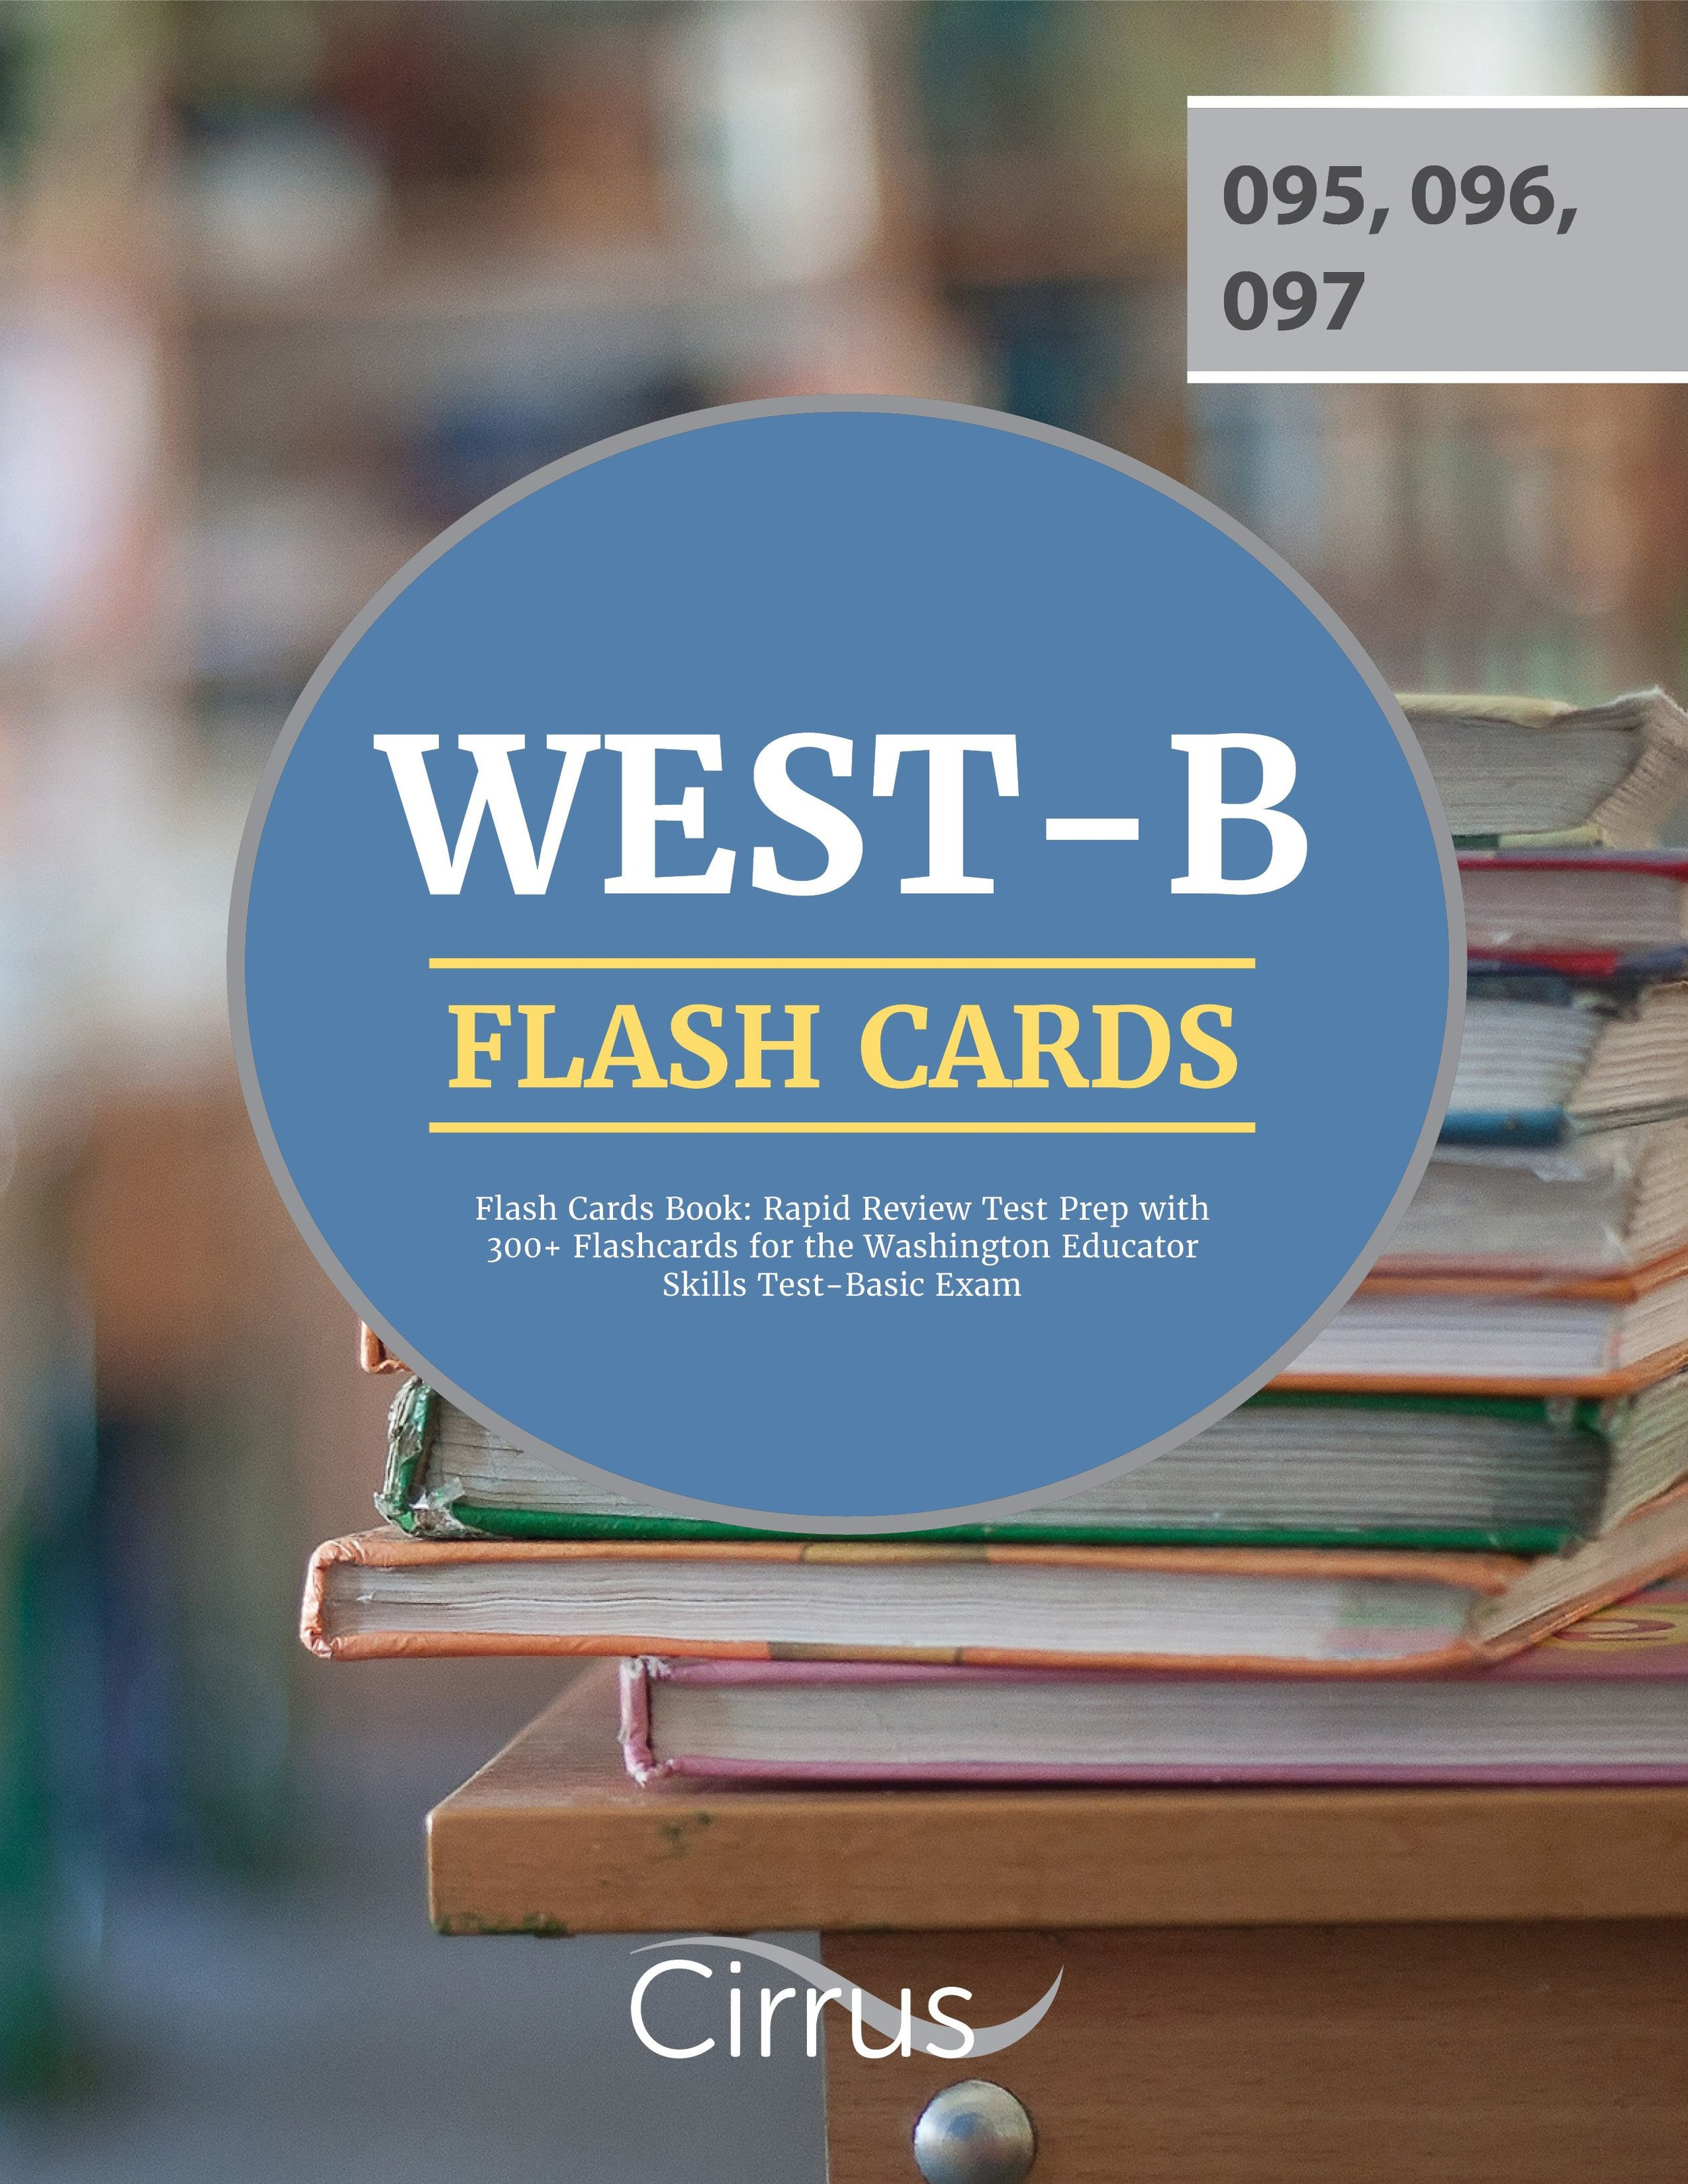 WEST-B Flash Cards Book